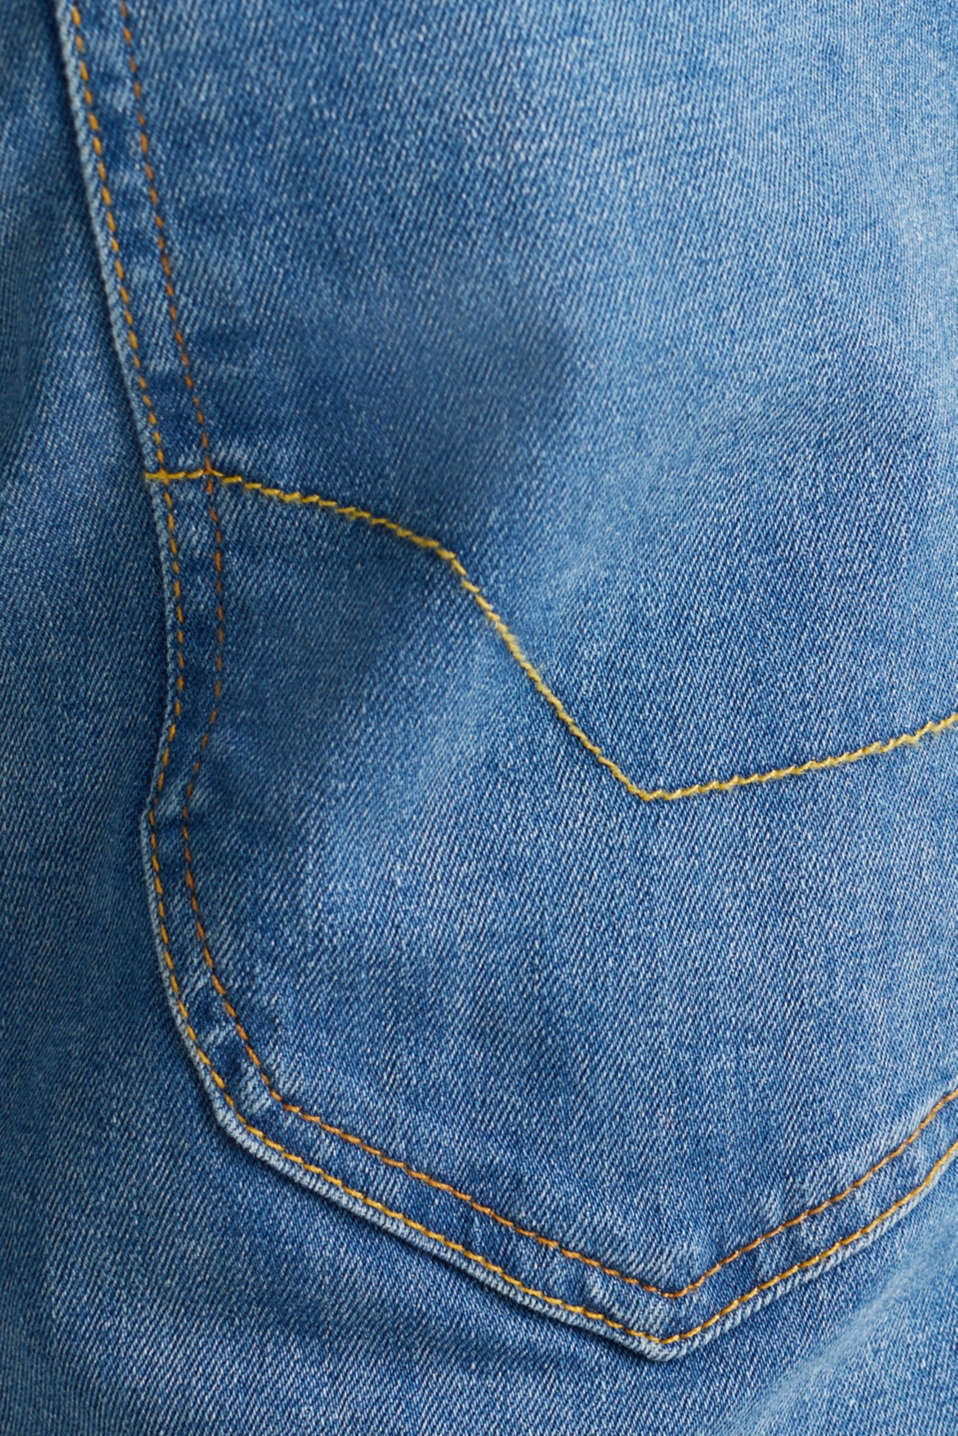 Denim Bermudas with a washed-out effect, BLUE MEDIUM WASH, detail image number 5